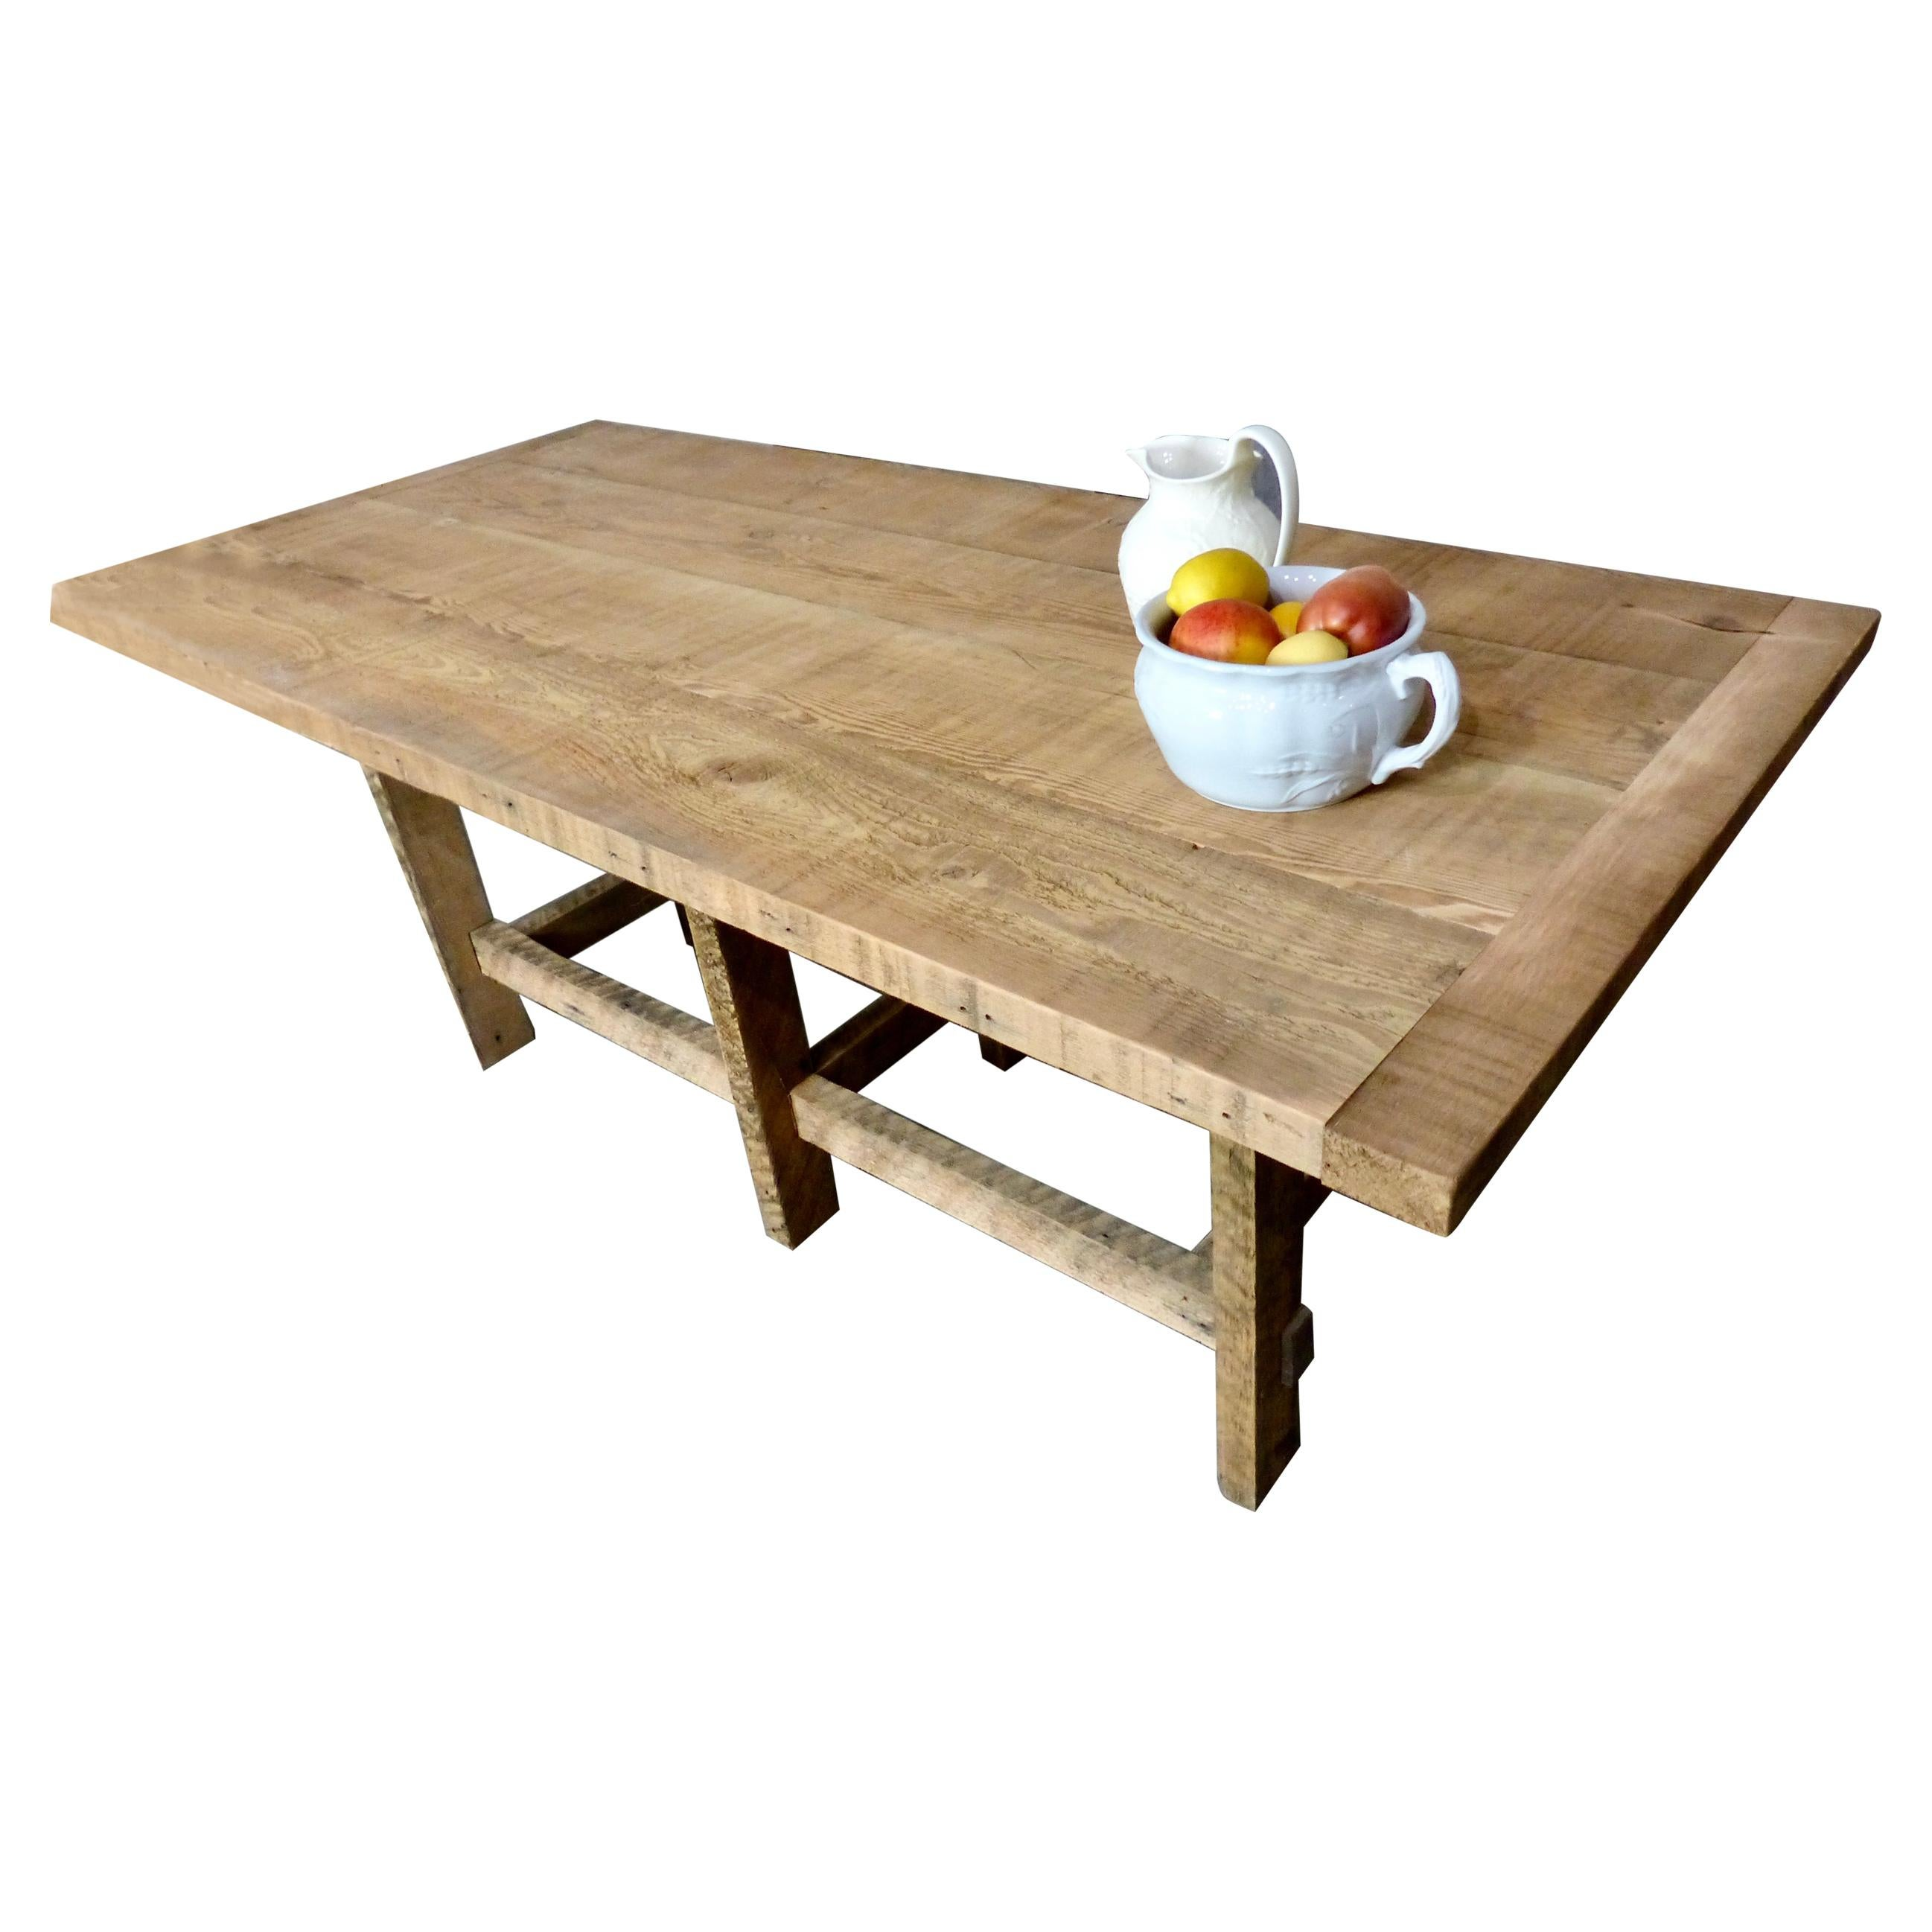 Bespoke Reclaimed Fir Dining Table